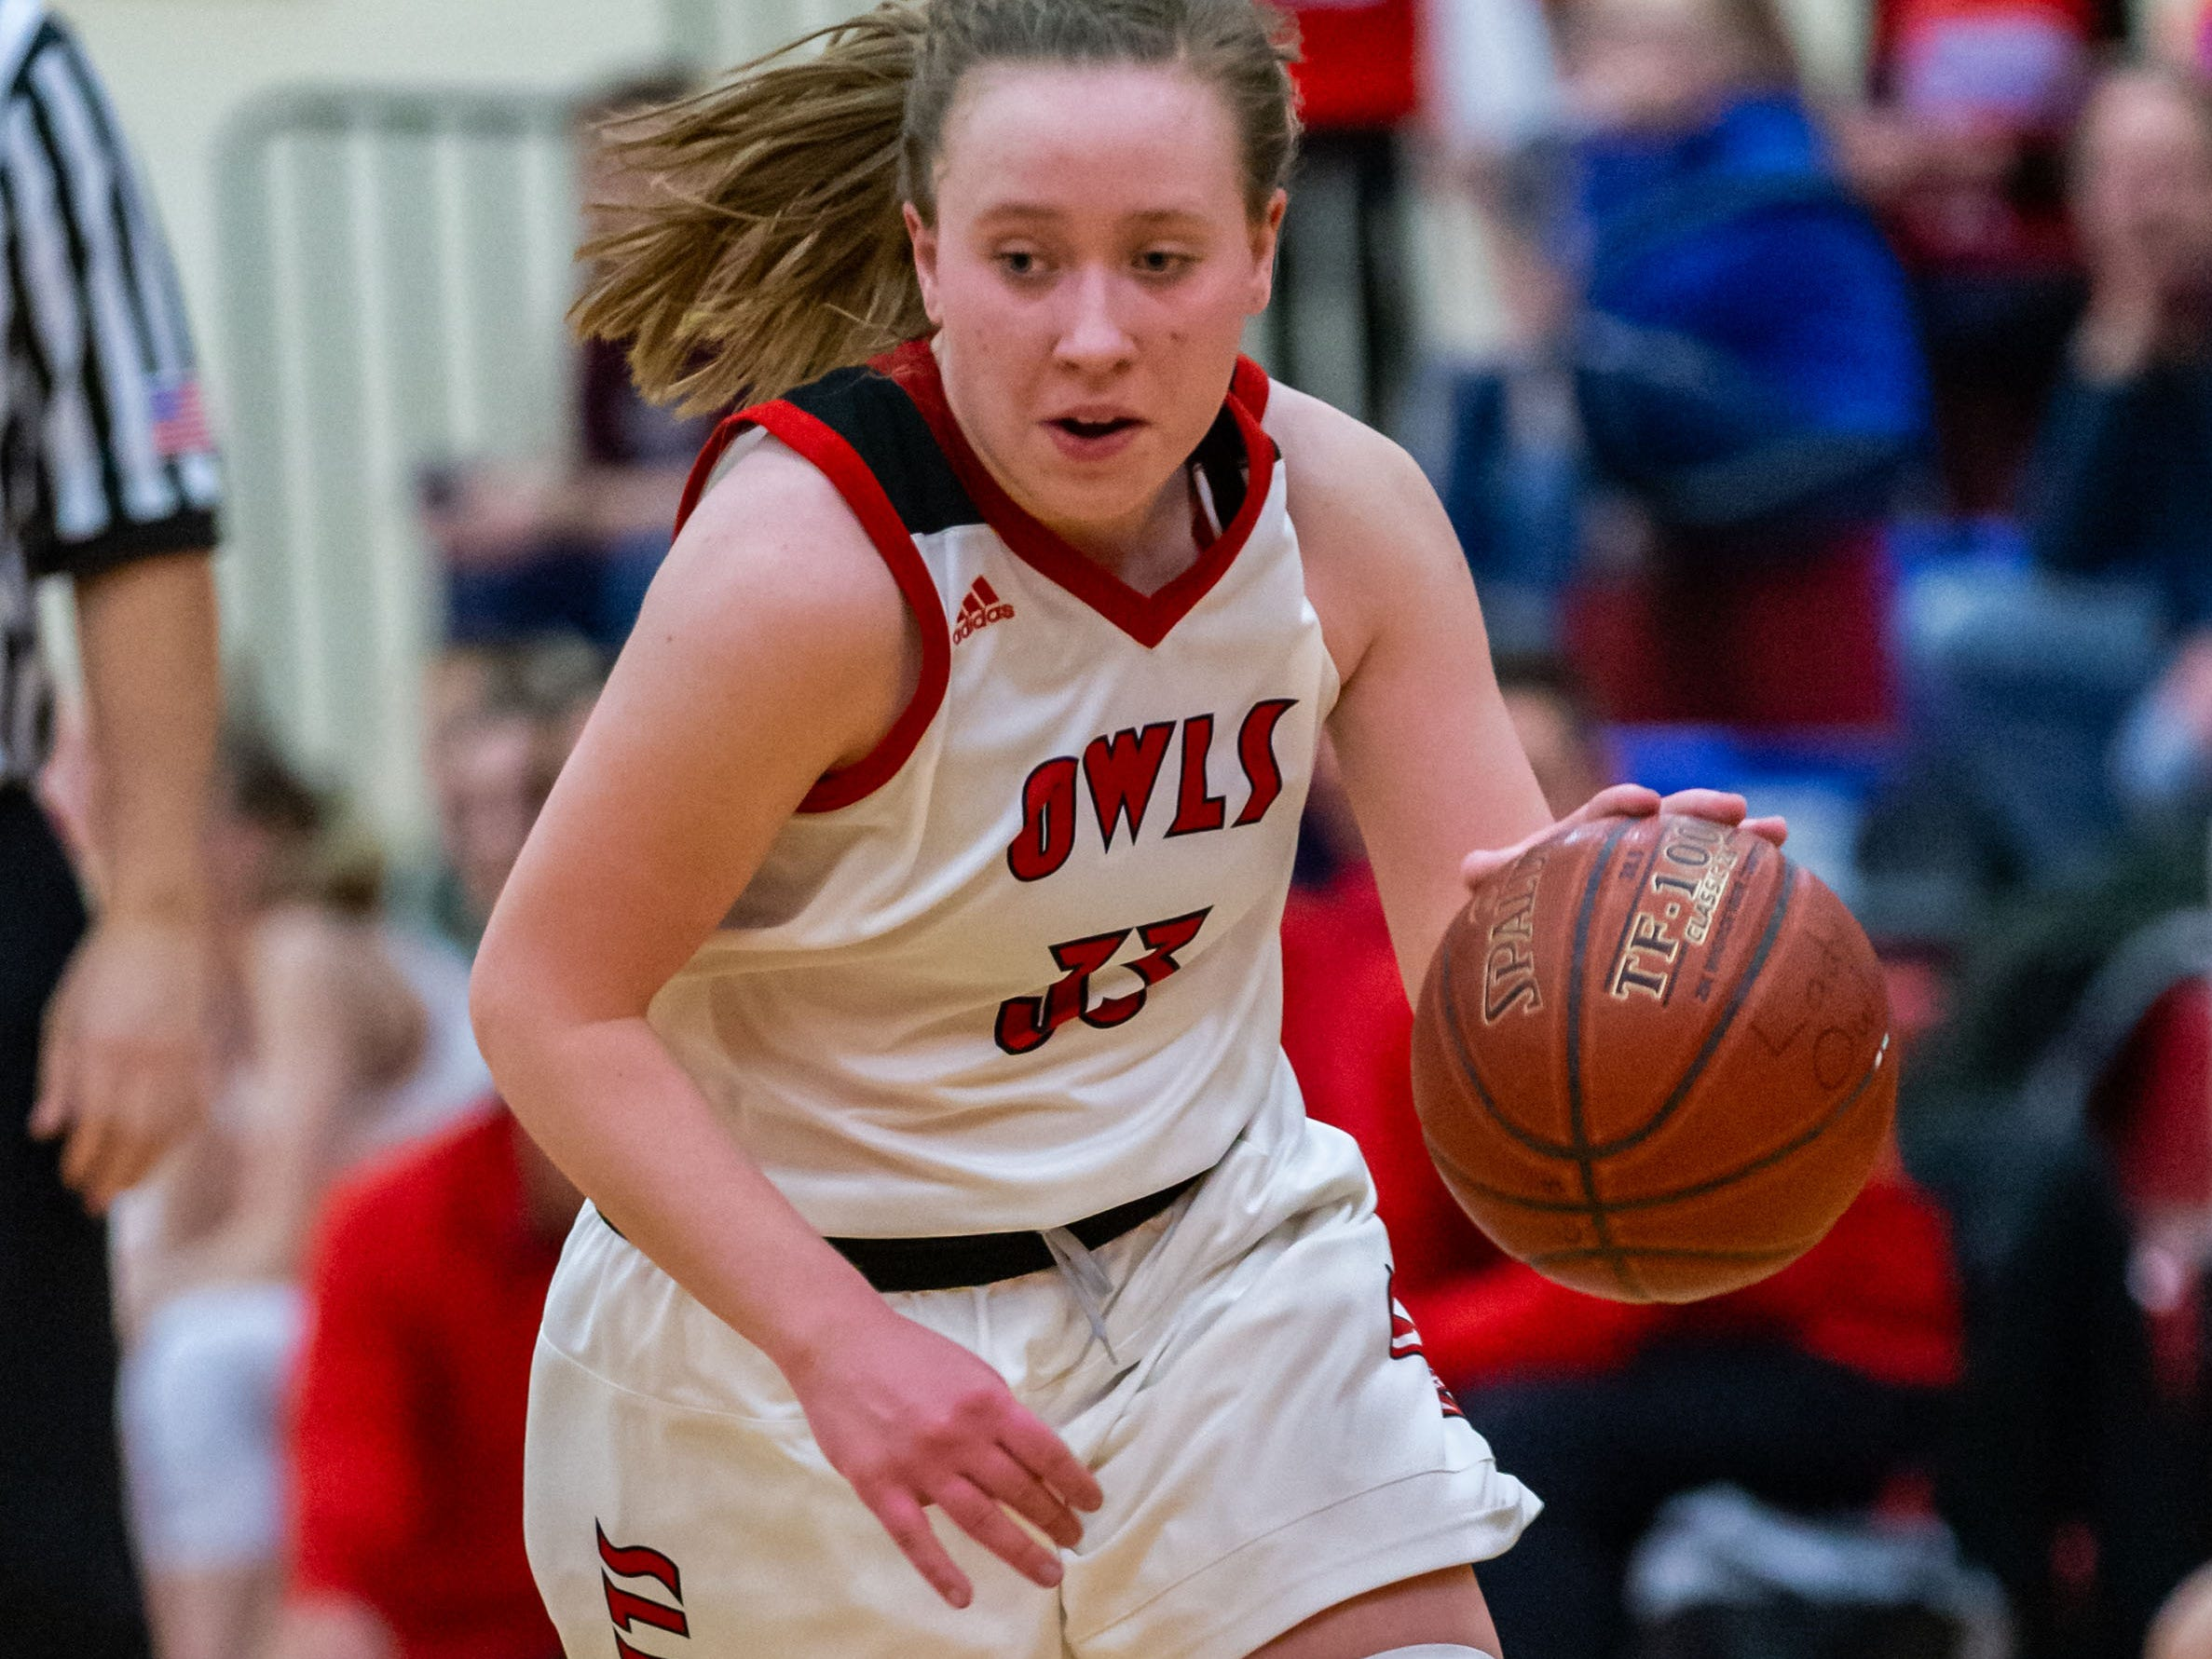 Slinger's Hannah Brooks (33) races downcourt during the game at home against Homestead on Friday, Jan. 11, 2019.